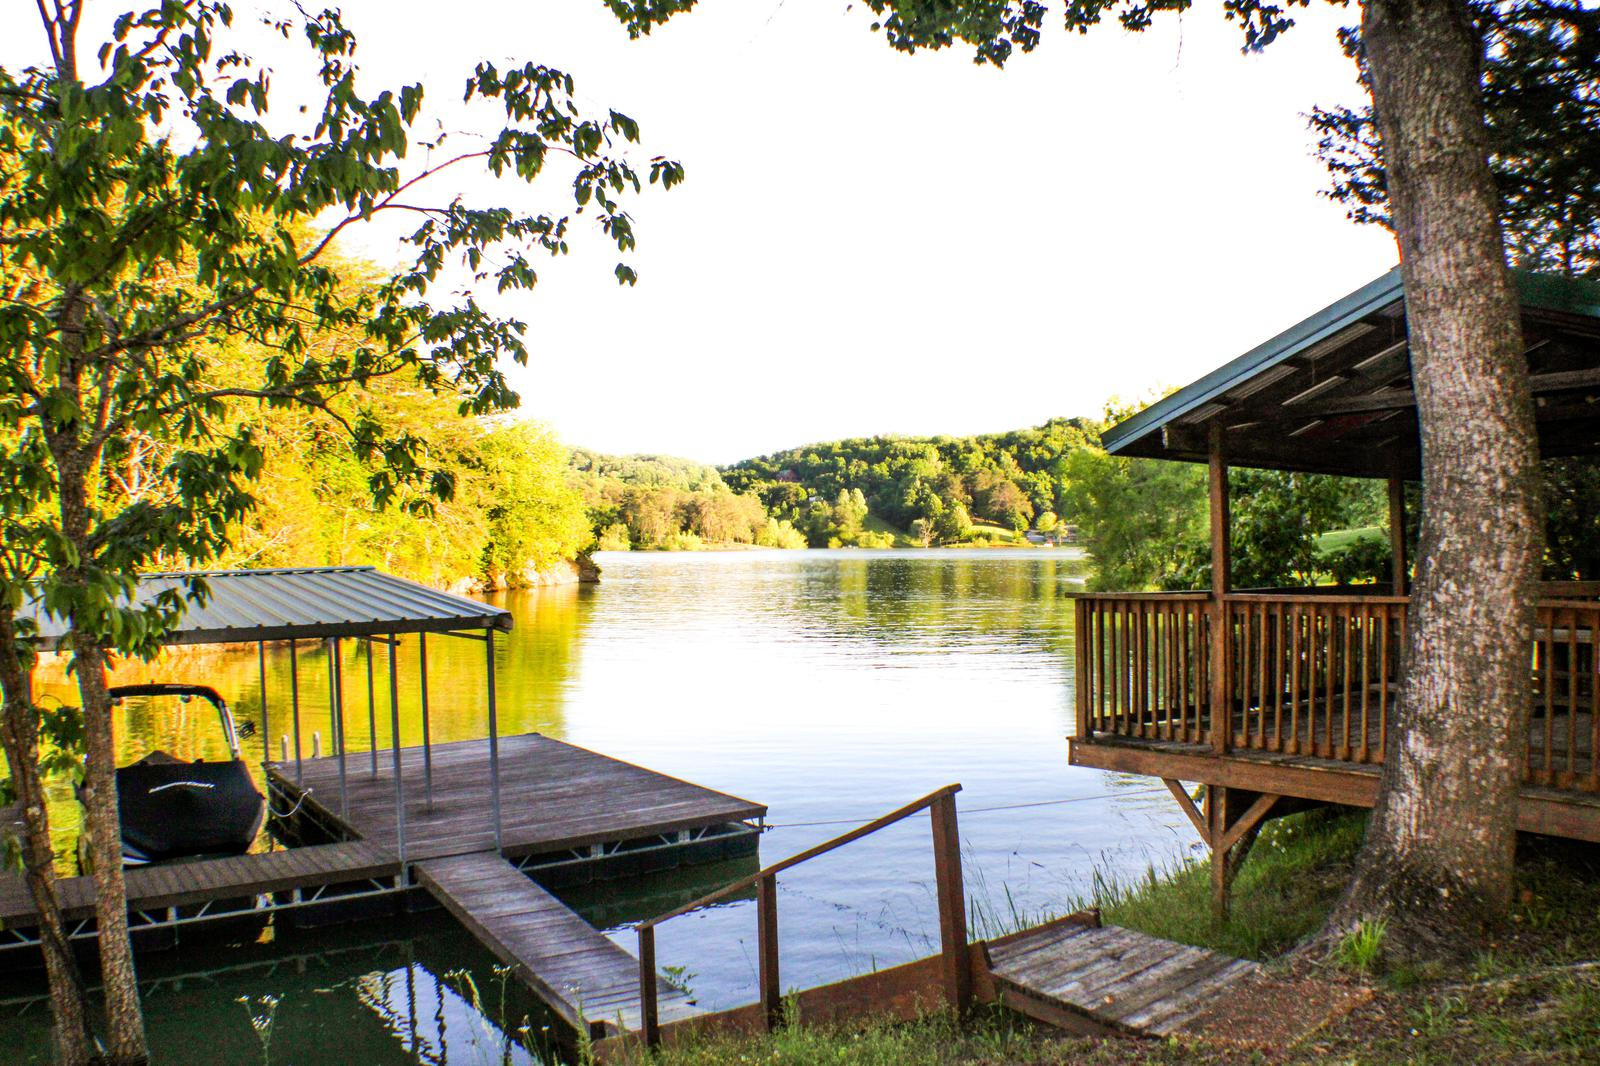 PRIVATE BOAT DOCK AND PAVILLION